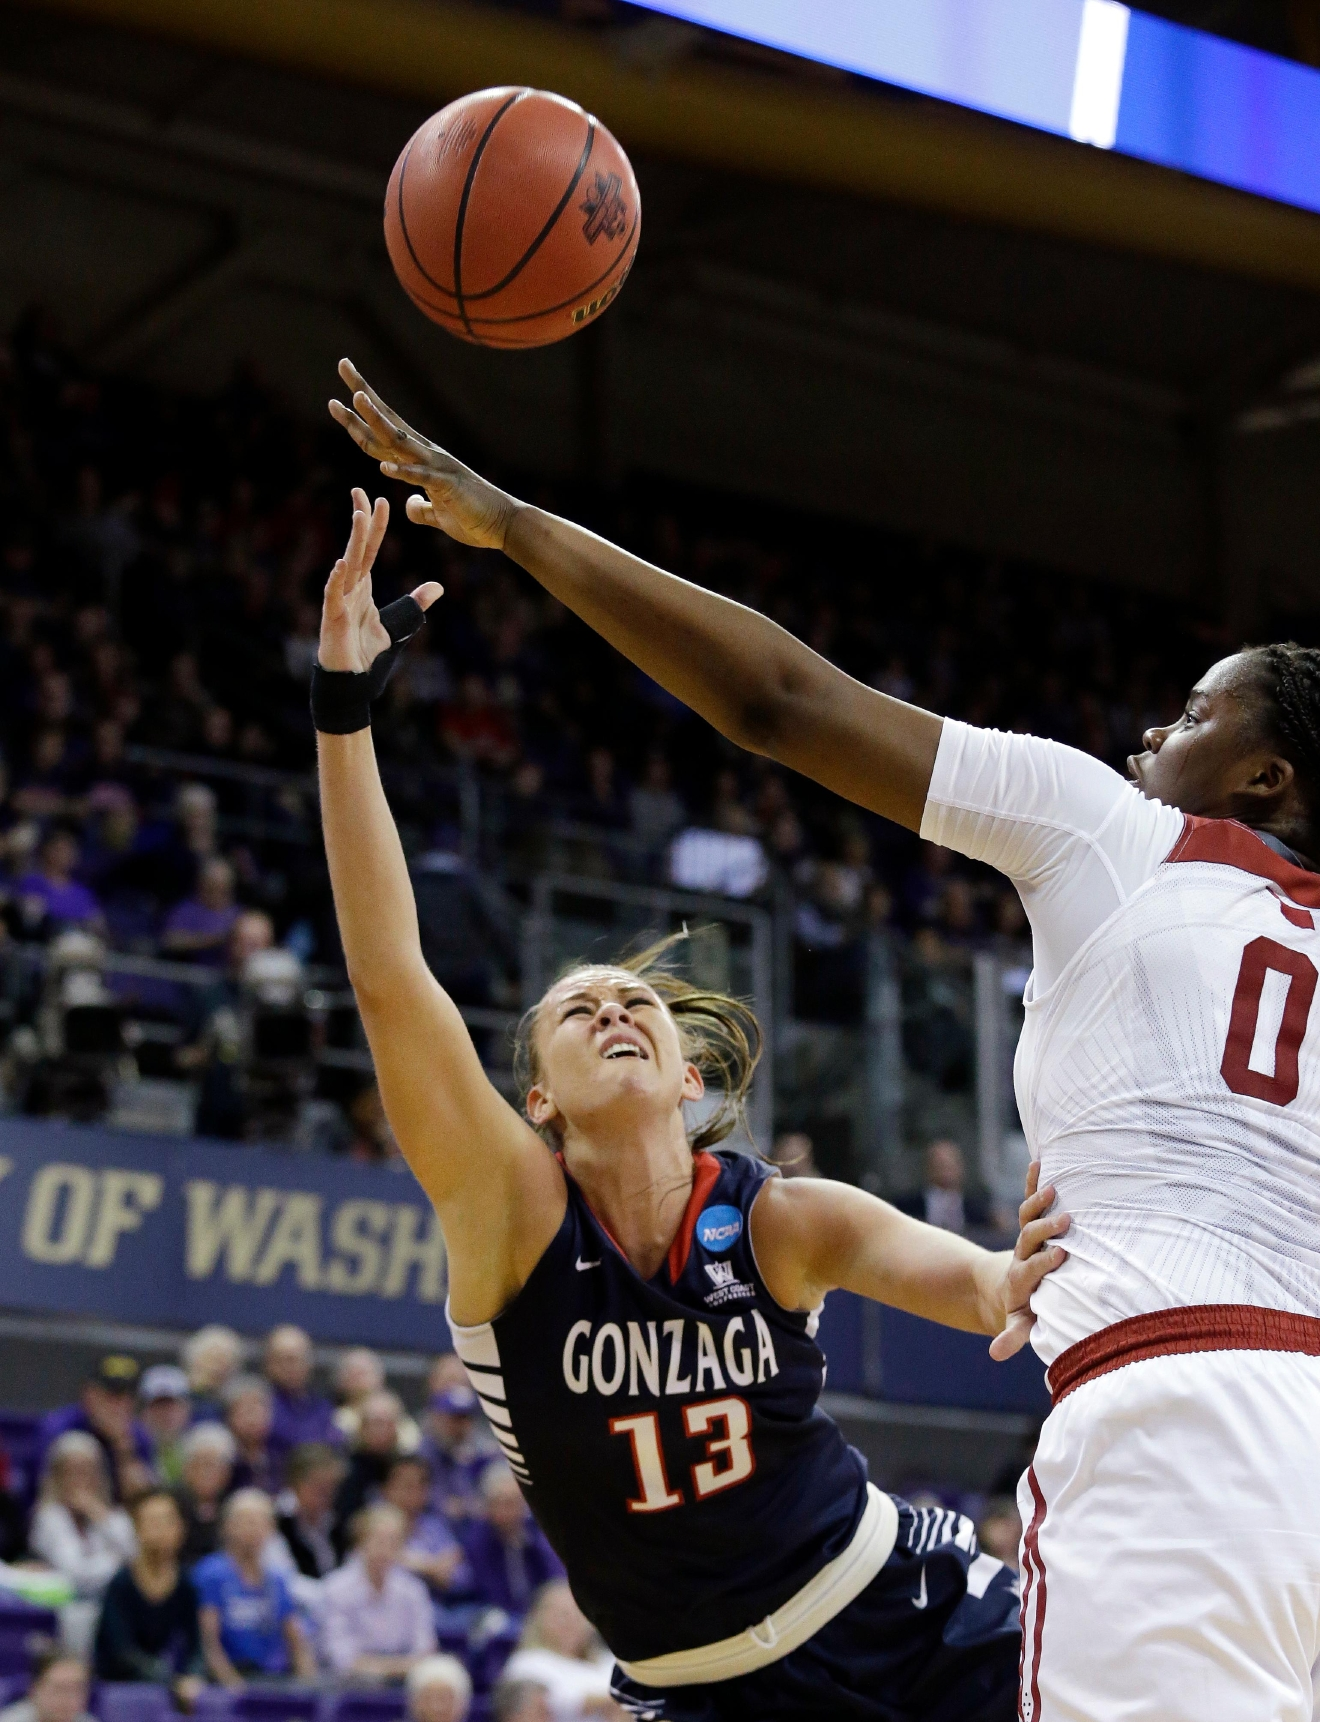 Gonzaga's Jill Barta (13) tries to get a shot past Oklahoma's Vionise Pierre-Louis during the first half of a first-round game in the NCAA women's college basketball tournament Saturday, March 18, 2017, in Seattle. (AP Photo/Elaine Thompson)